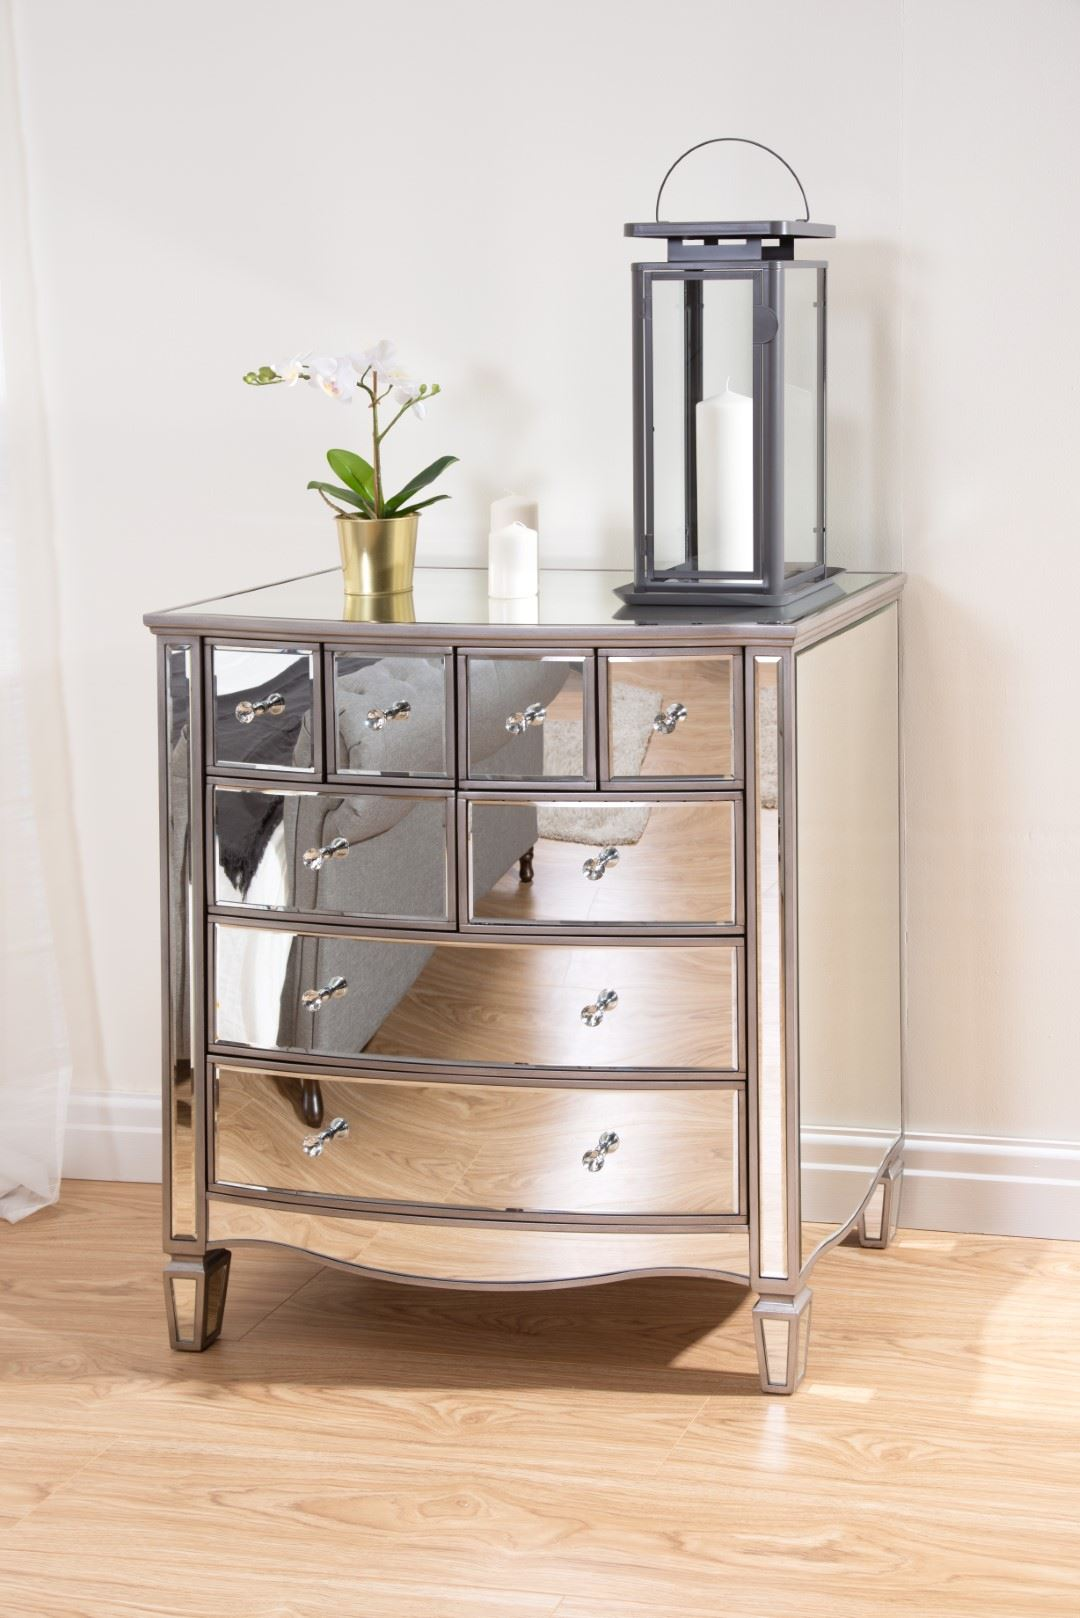 Birlea Elysee Mirrored Merchant Drawer Mirror Furniture Chest Crystal Handle